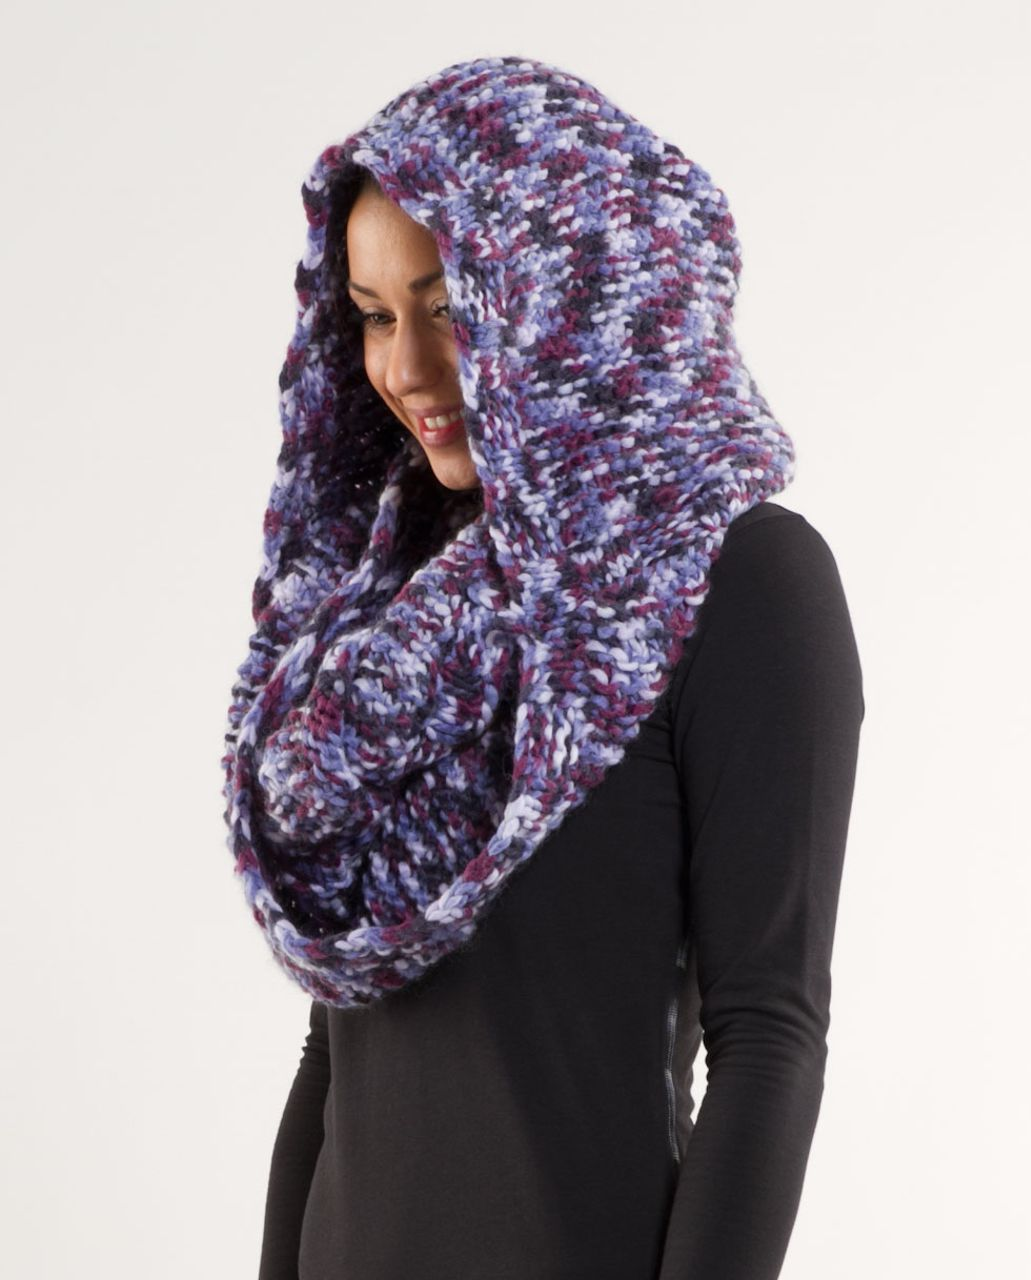 Lululemon Hickey Hider - Black Swan Lilac Persian Purple Plum Space Dye